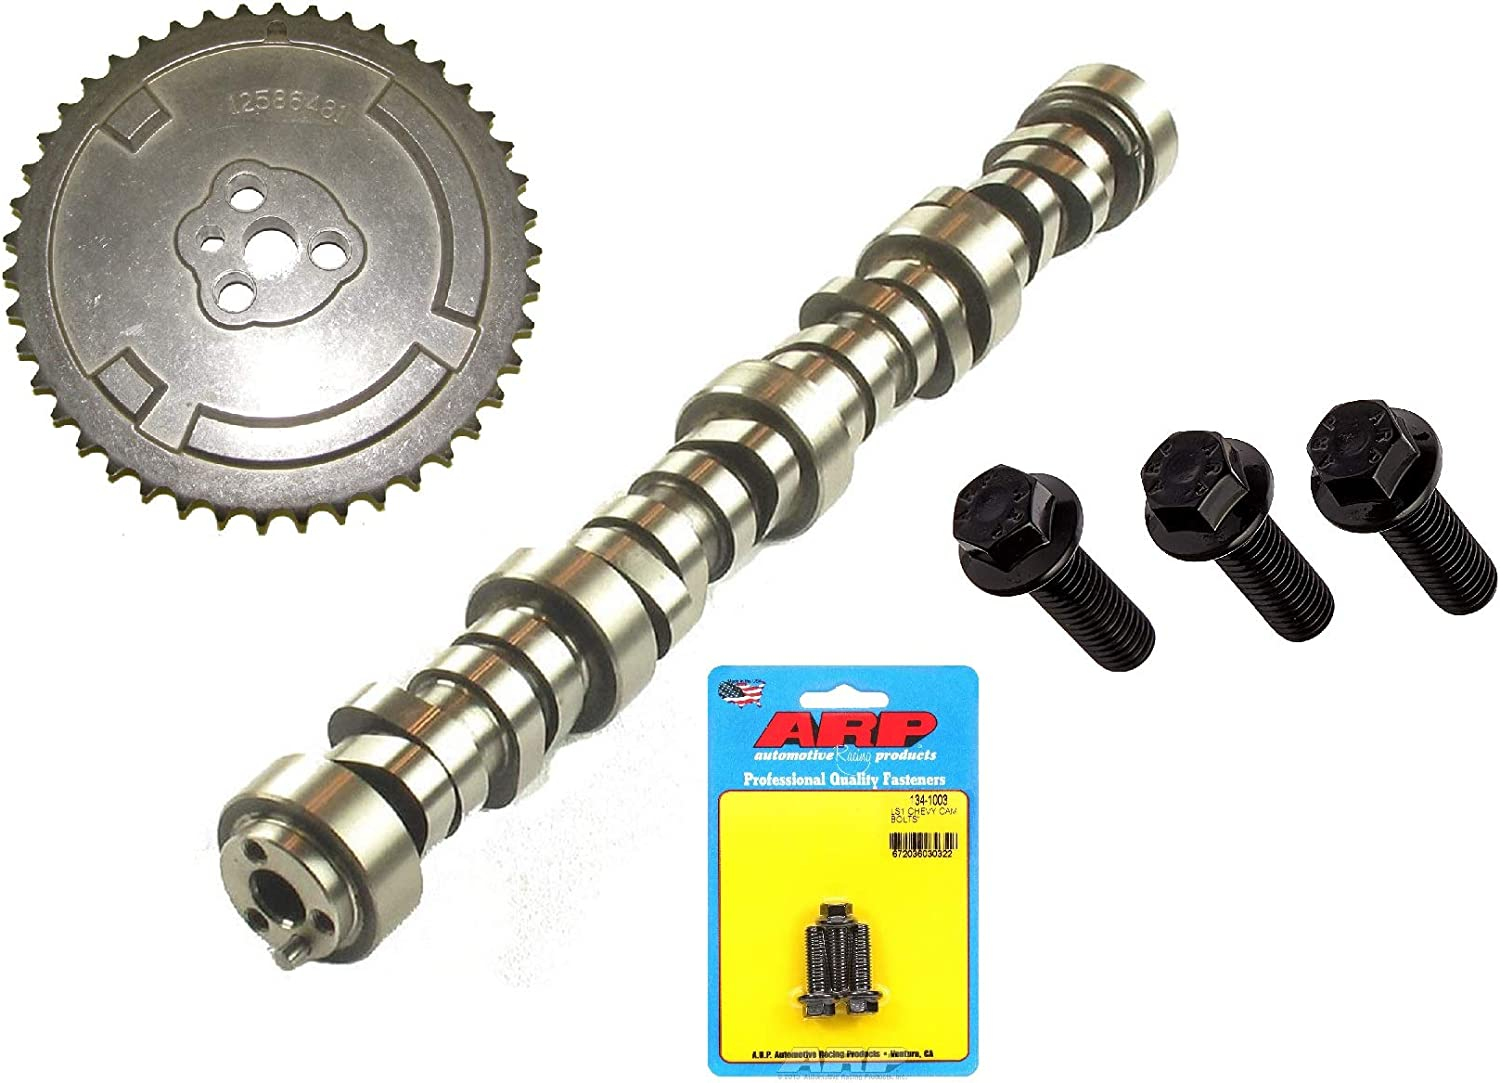 Elgin Industries 1997-2007 GM LS 5.3L 6.0L 6.2L L99 L92 V-8 LSx Sloppy Stage 2 Camshaft /& Sprocket /& ARP Bolts